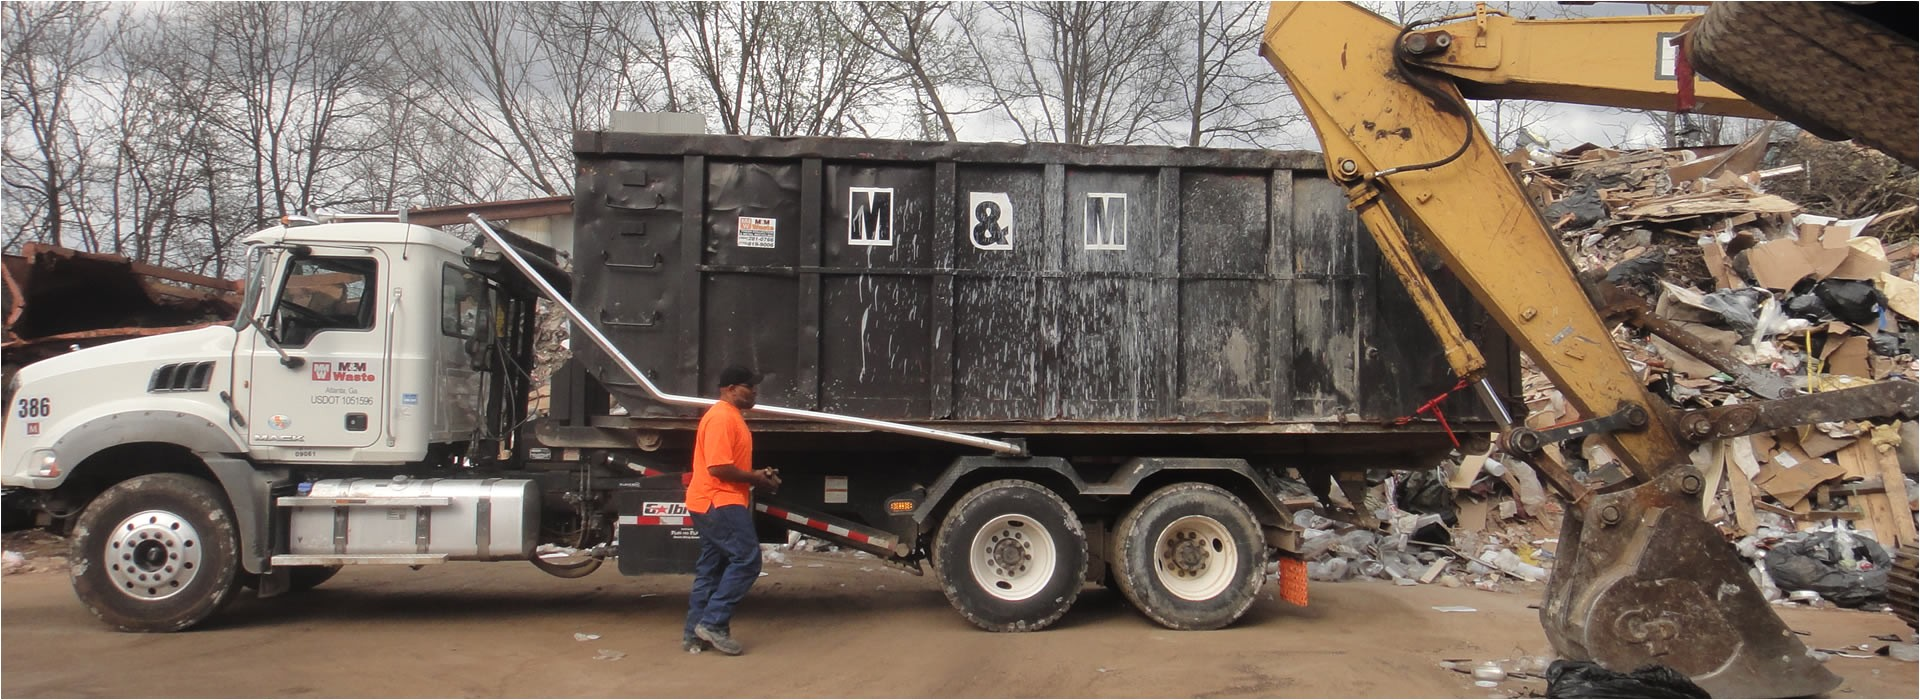 dumpster rental in union city ga p 71